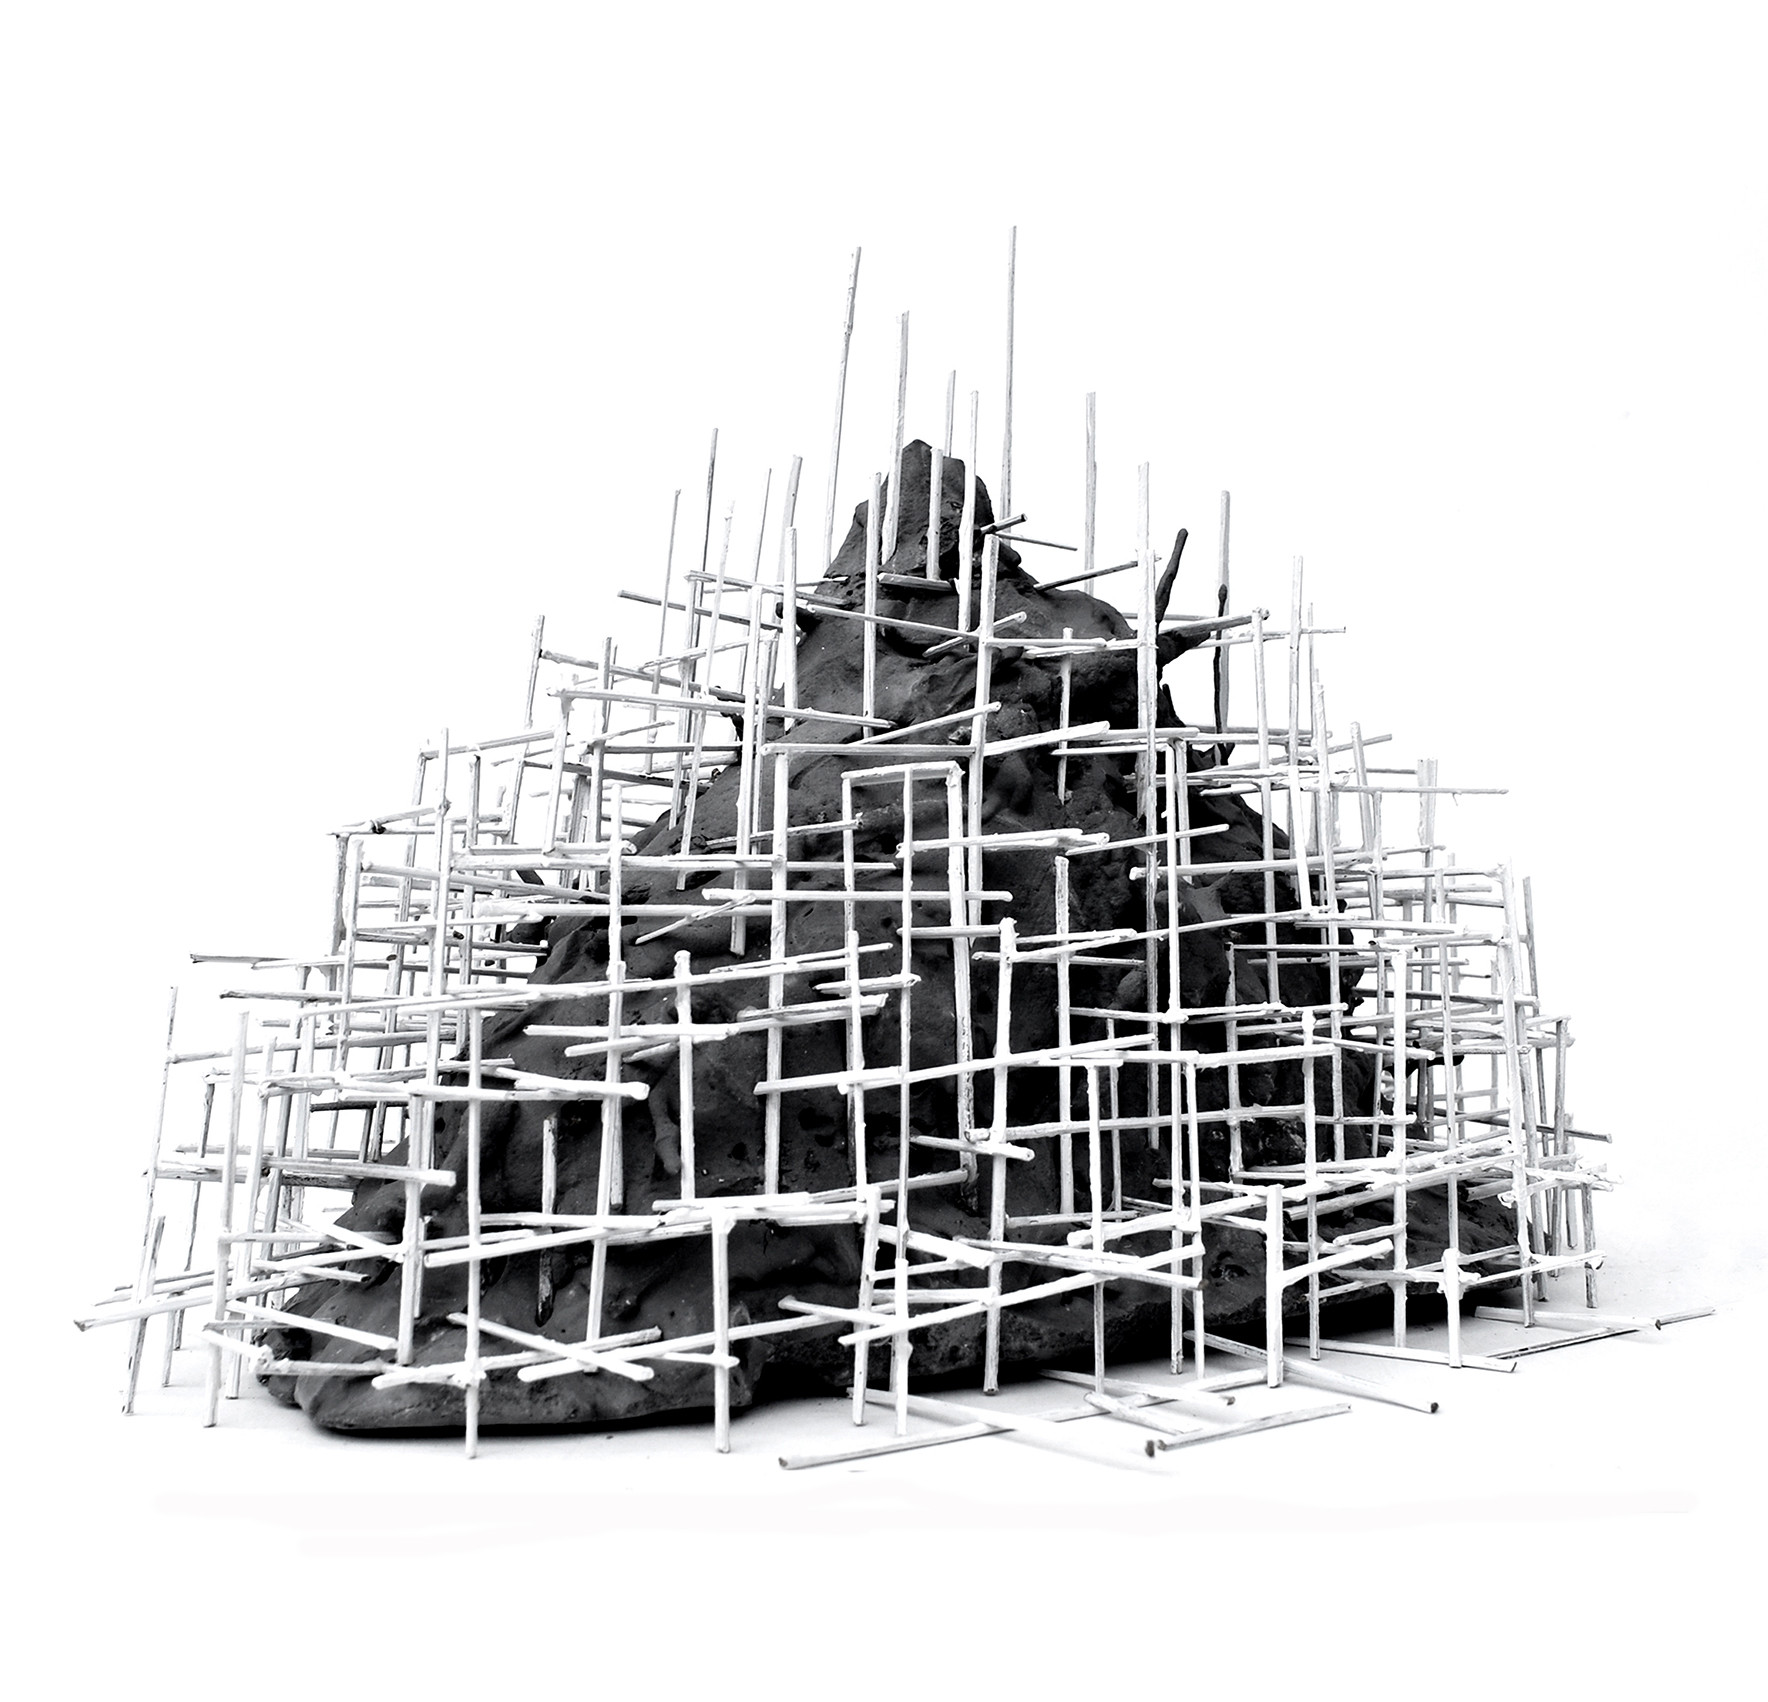 Constructing Mountain, 2012. Straw, clay and acrylic paint on MDF board. 40 x 40 x 40 cm